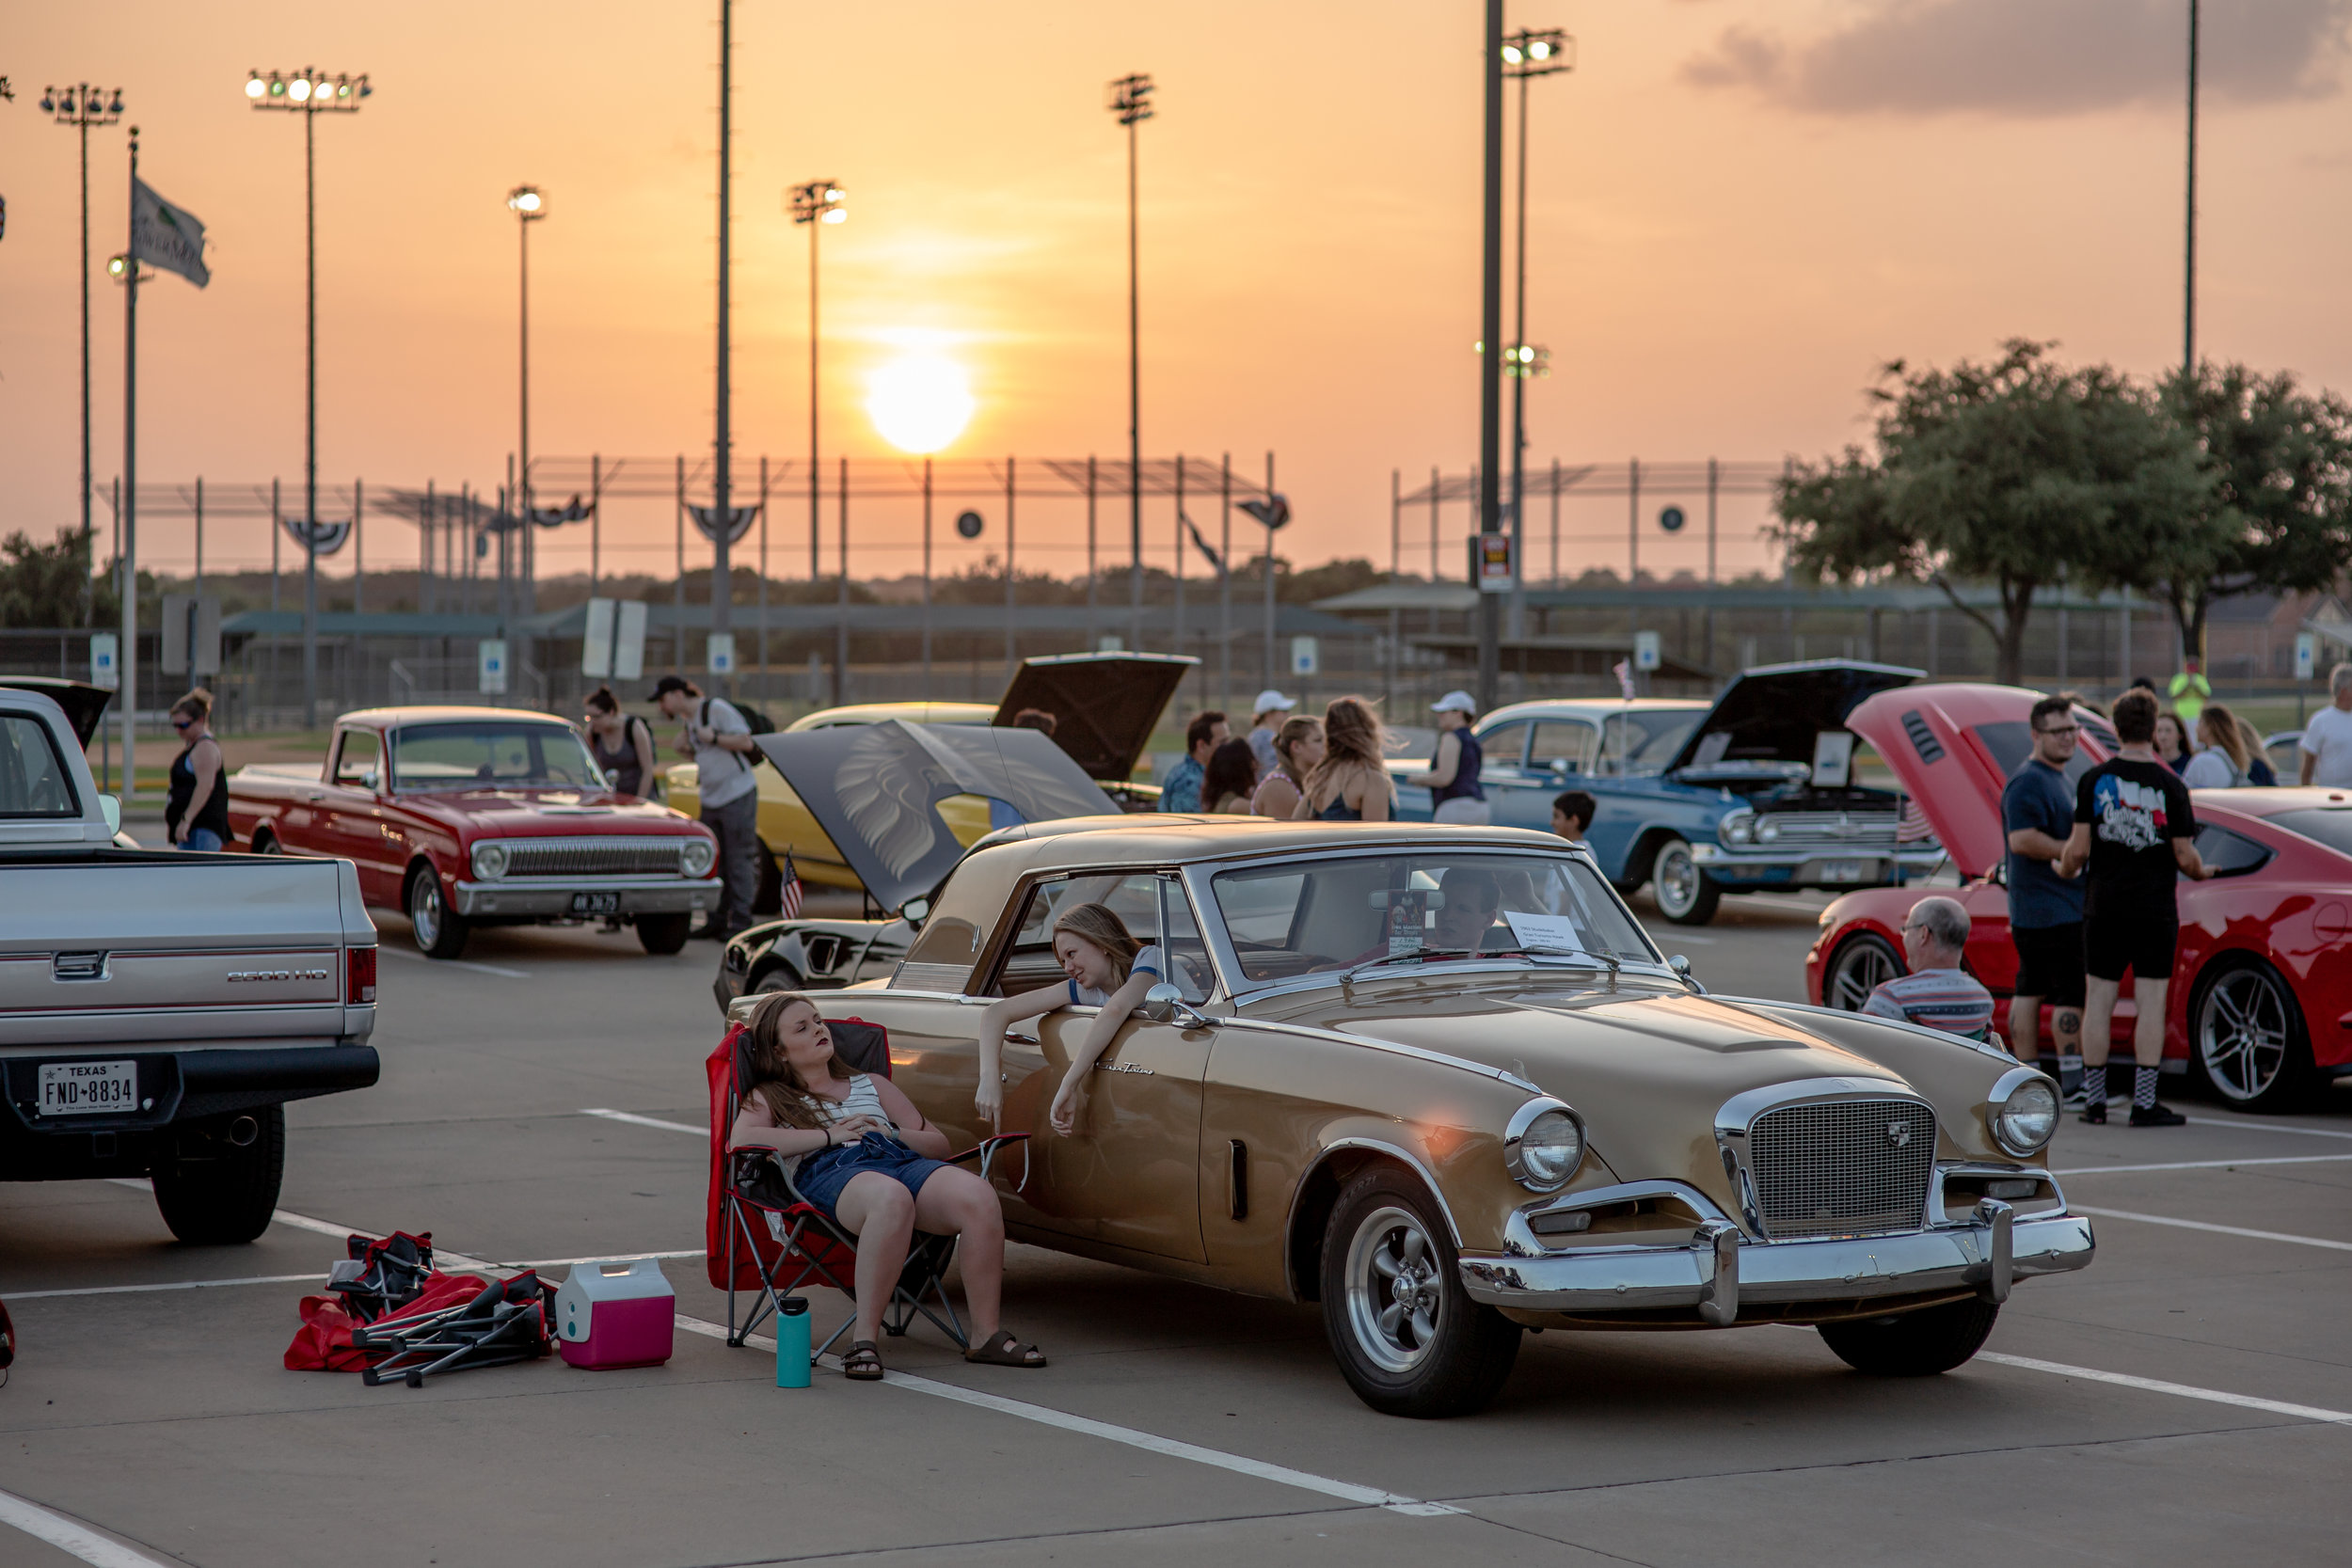 JULY 4, 2019 - TWO YOUNG GIRLS HANGOUT AND TALK DURING A CAR SHOW AT THE ANNUAL INDEPENDENCE DAY FESTIVAL OF FLOWER MOUND, TEXAS.